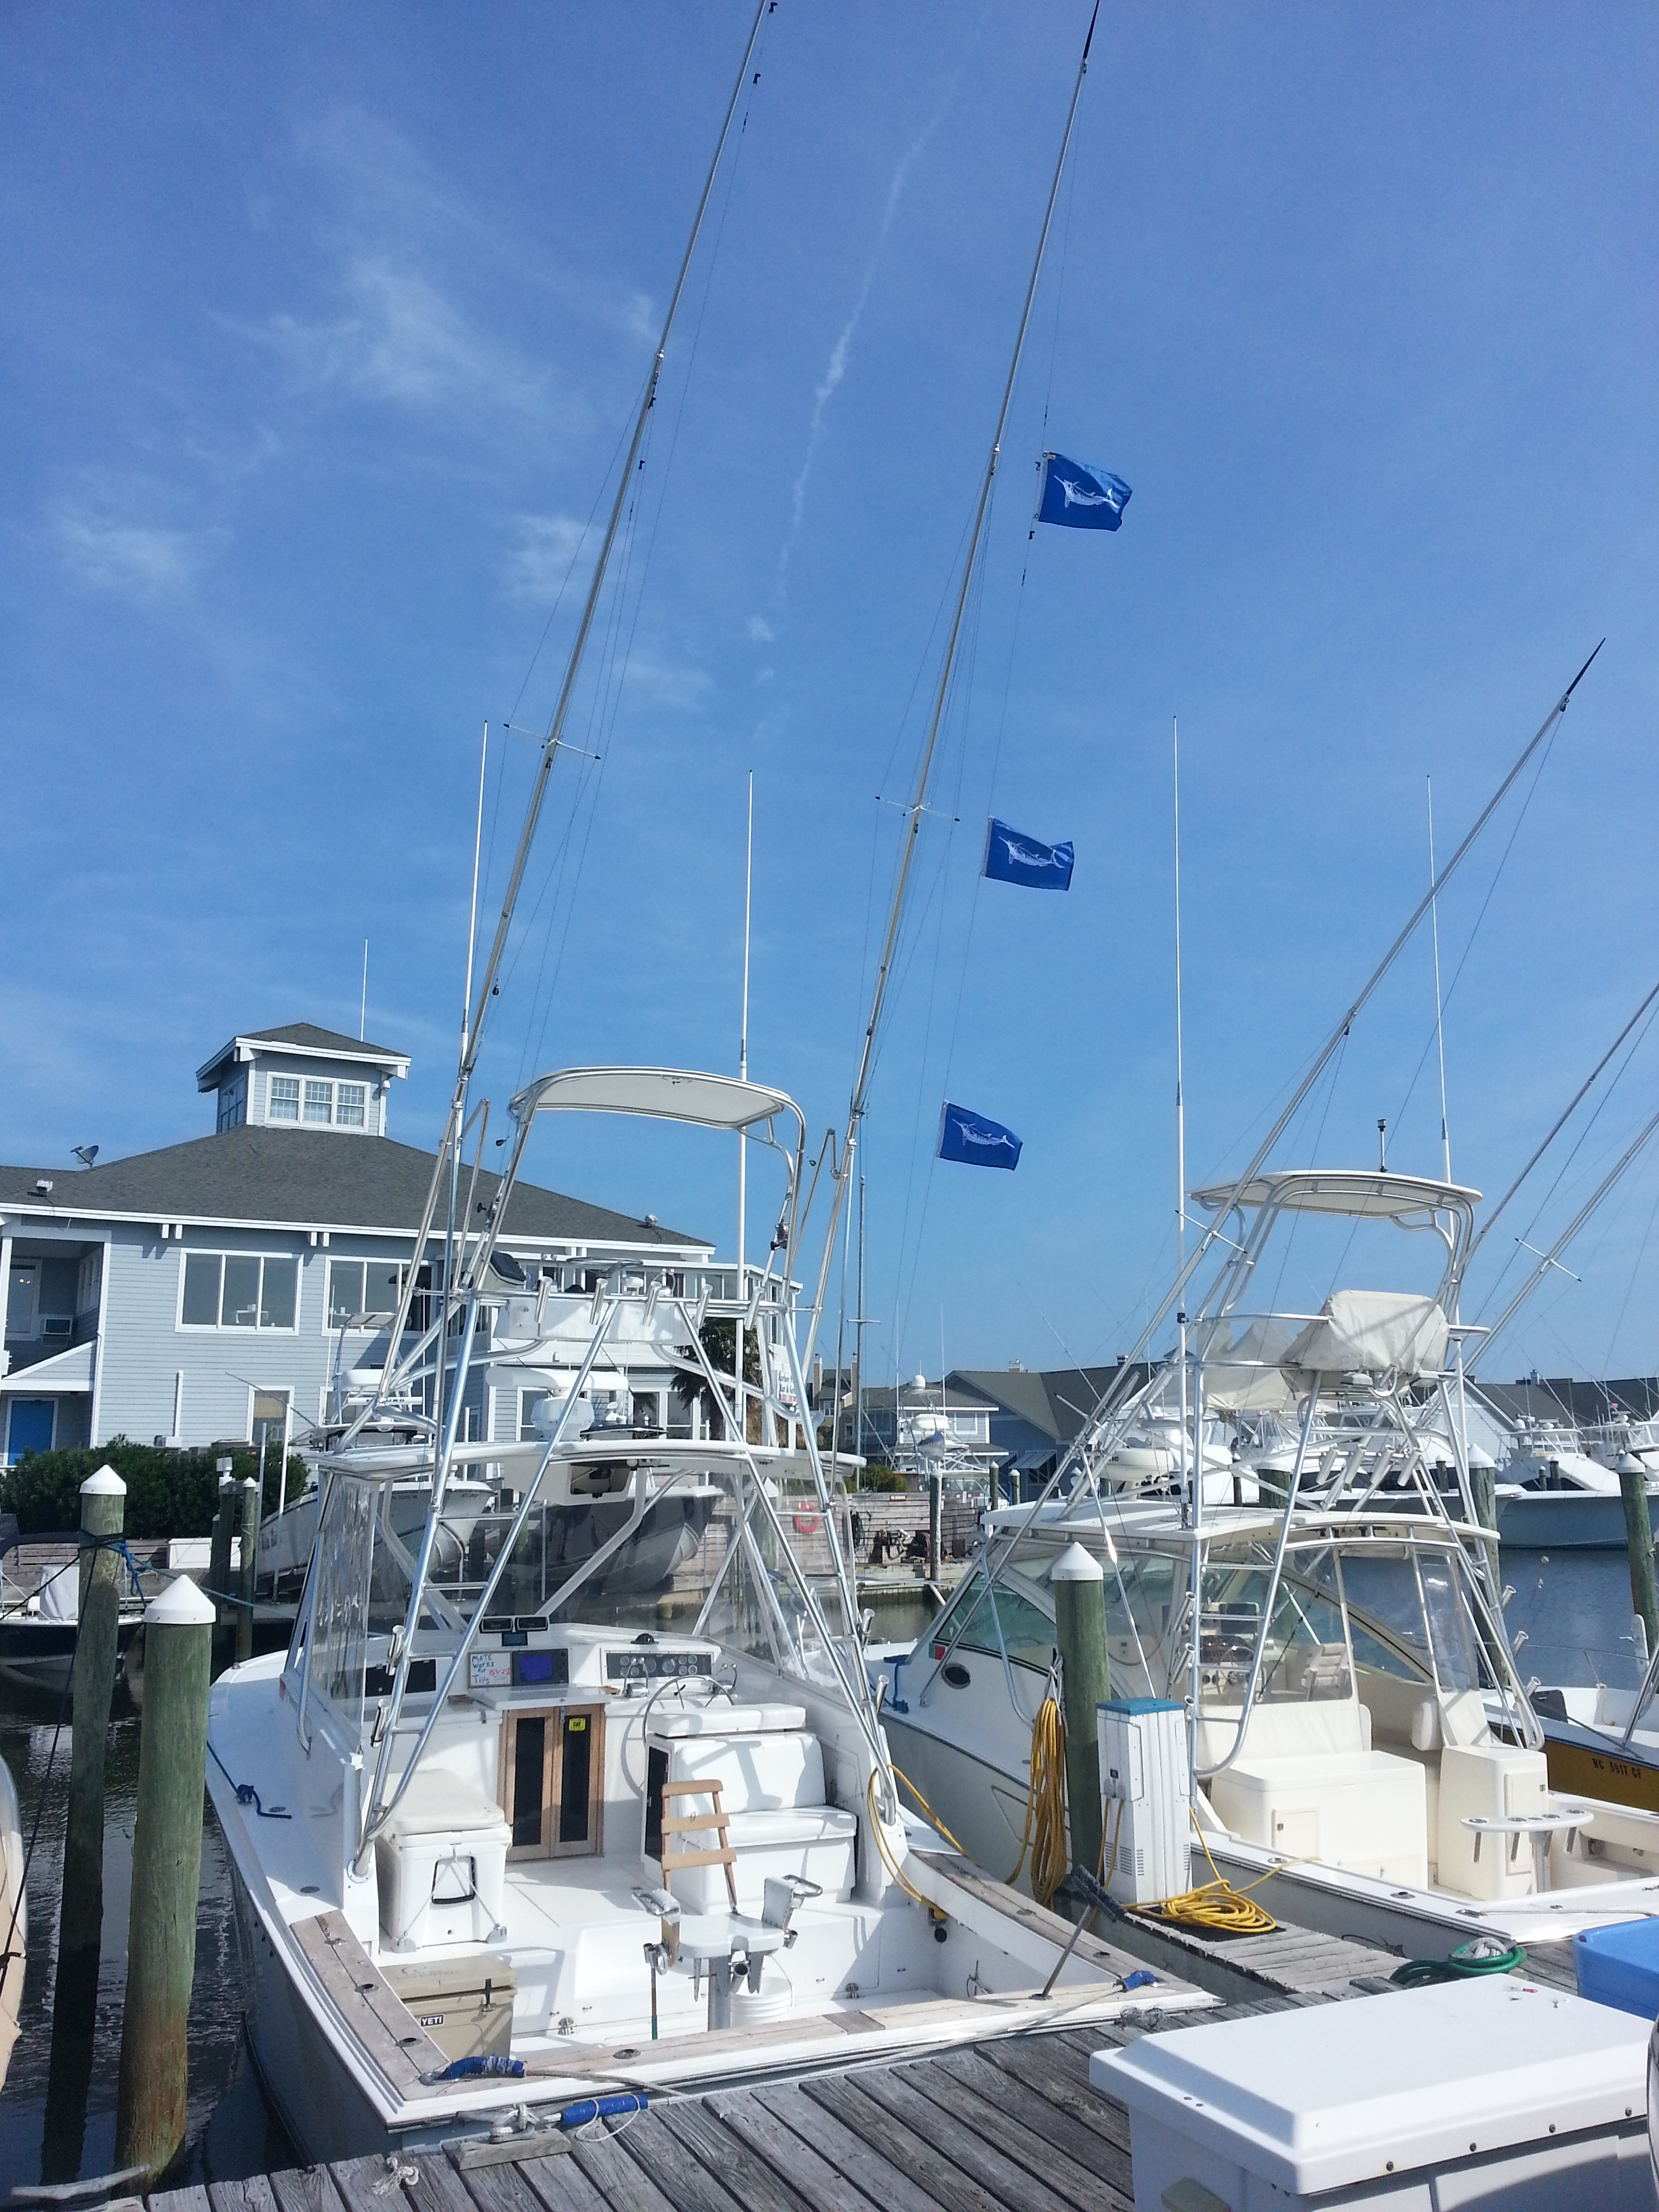 Outer banks charters marlin and dolphin for Fishing charters outer banks